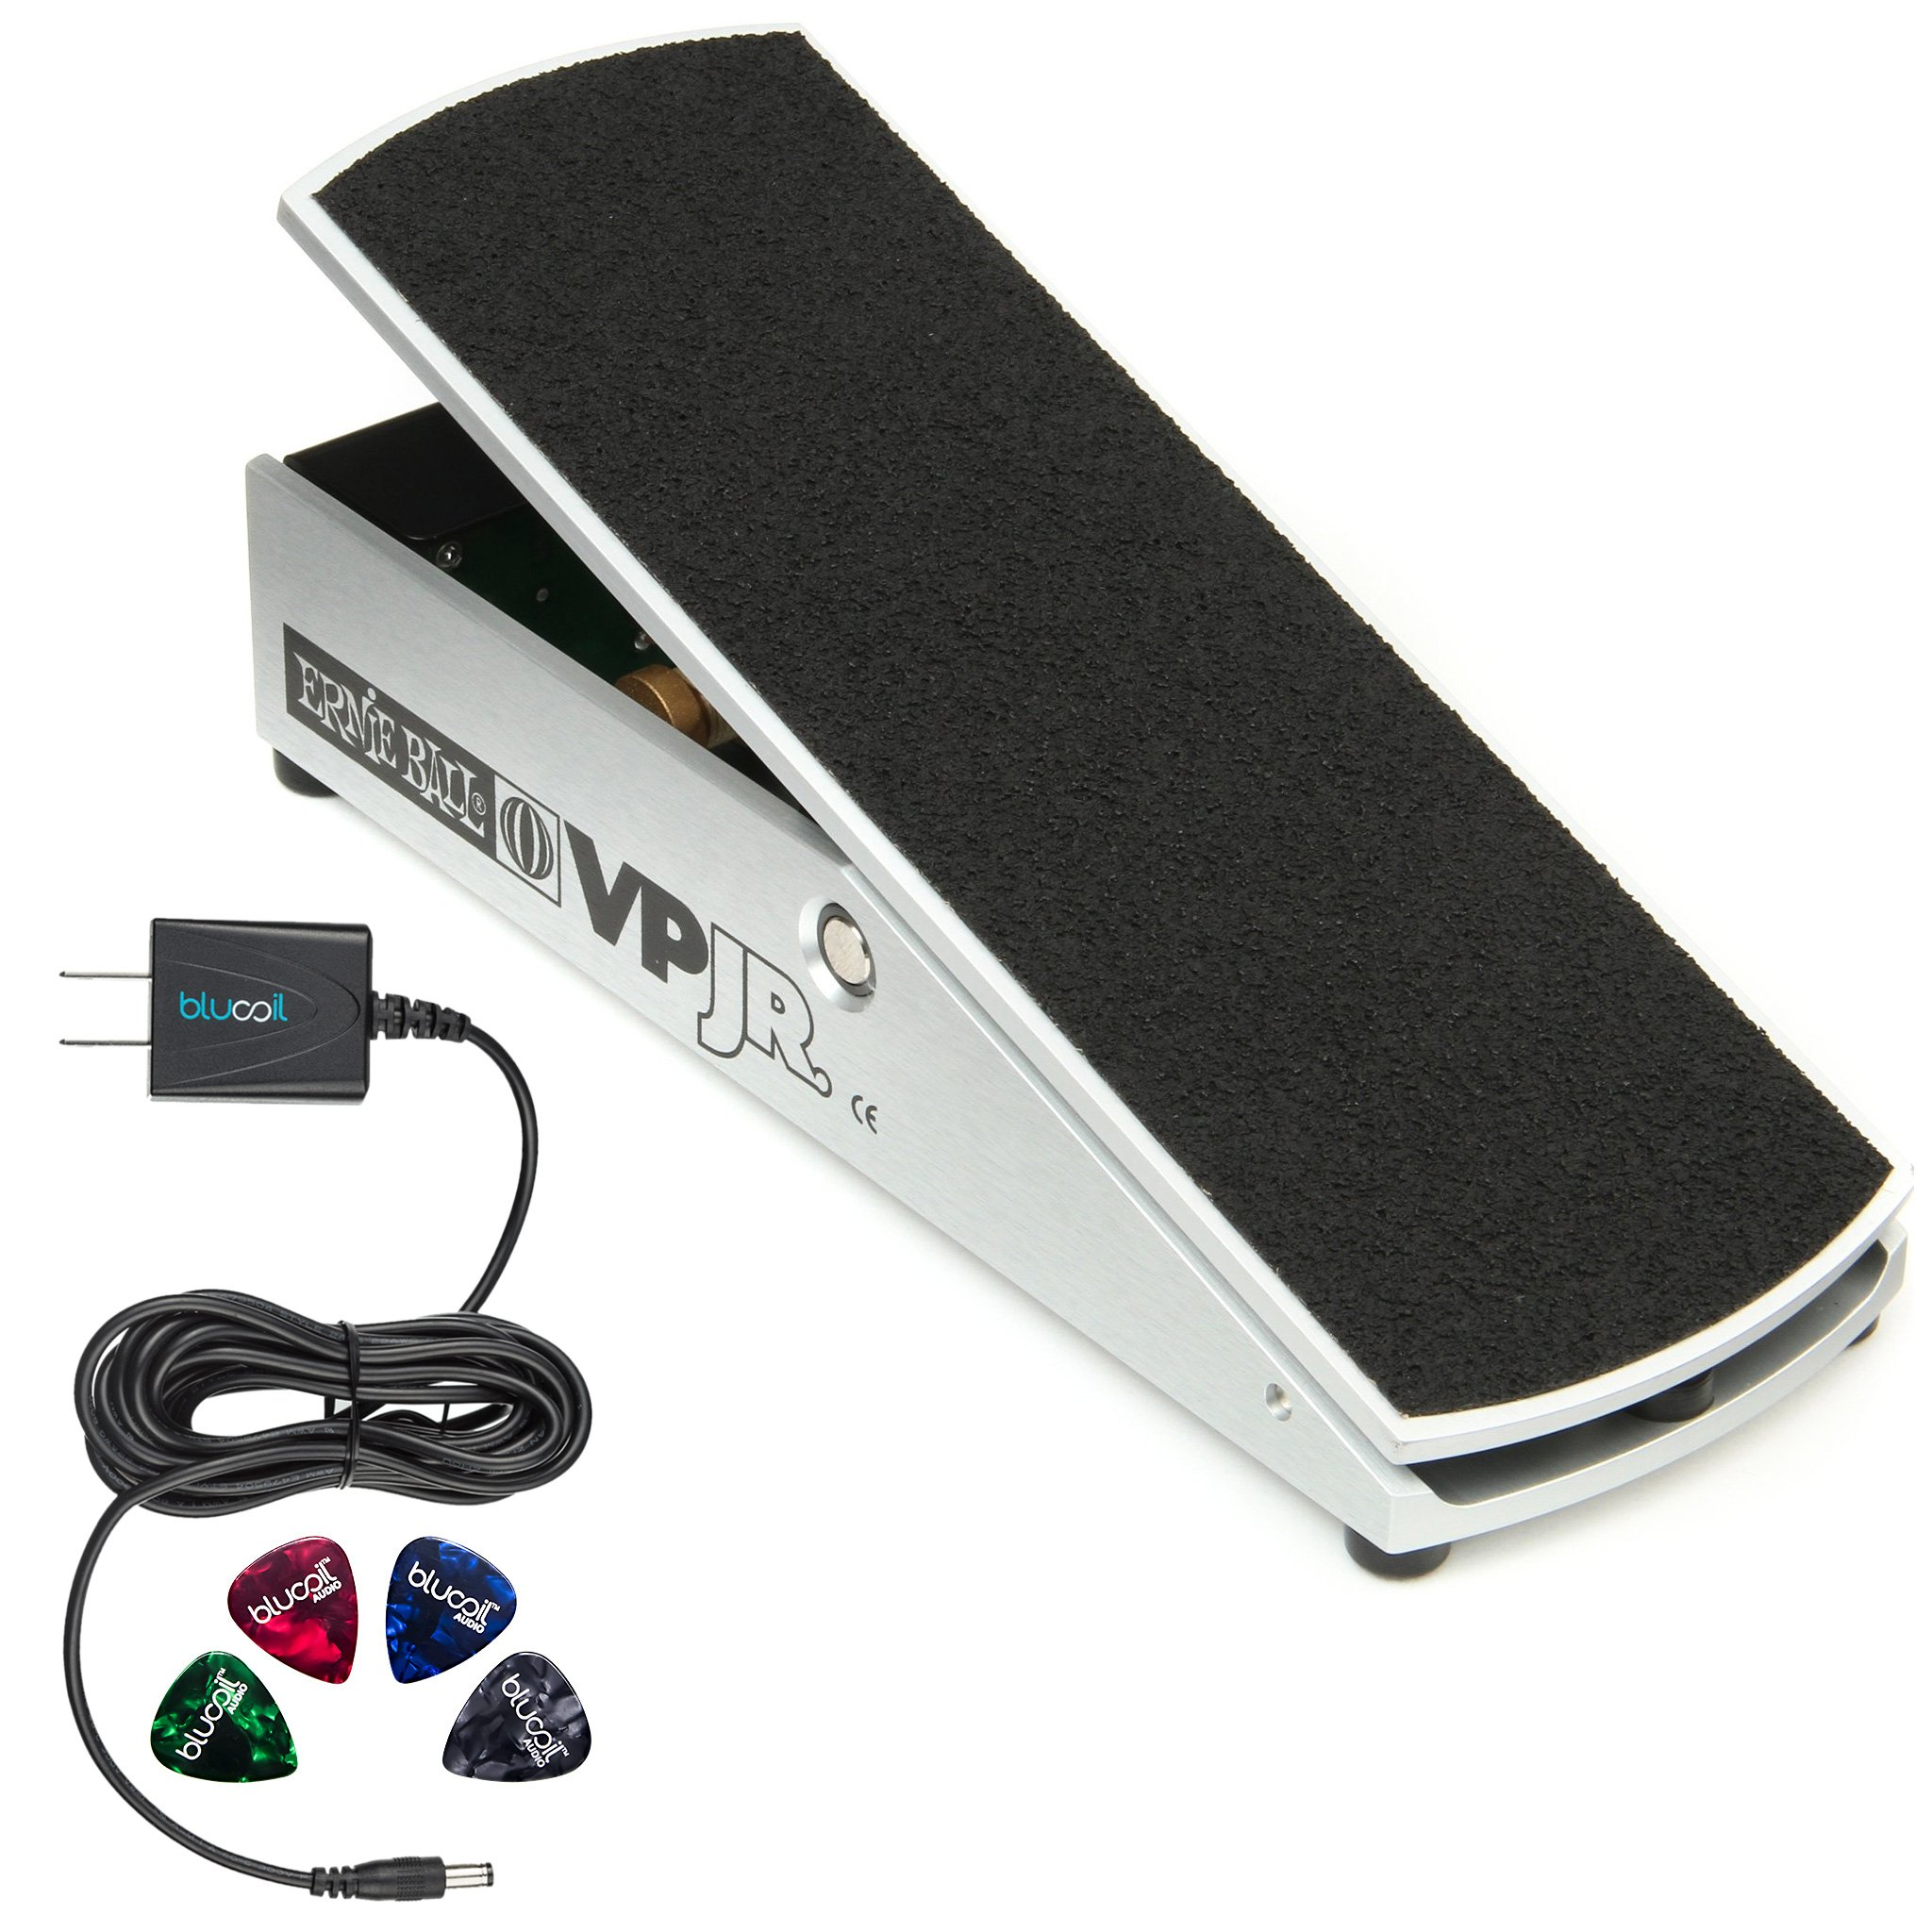 Ernie Ball VP Jr. 25K Volume Pedal - Mono for Active Electronics, 6181 - INCLUDES- Blucoil Power Supply AC/DC Adapter for 9 Volt DC 670mA AND 4 Pack of Guitar Picks